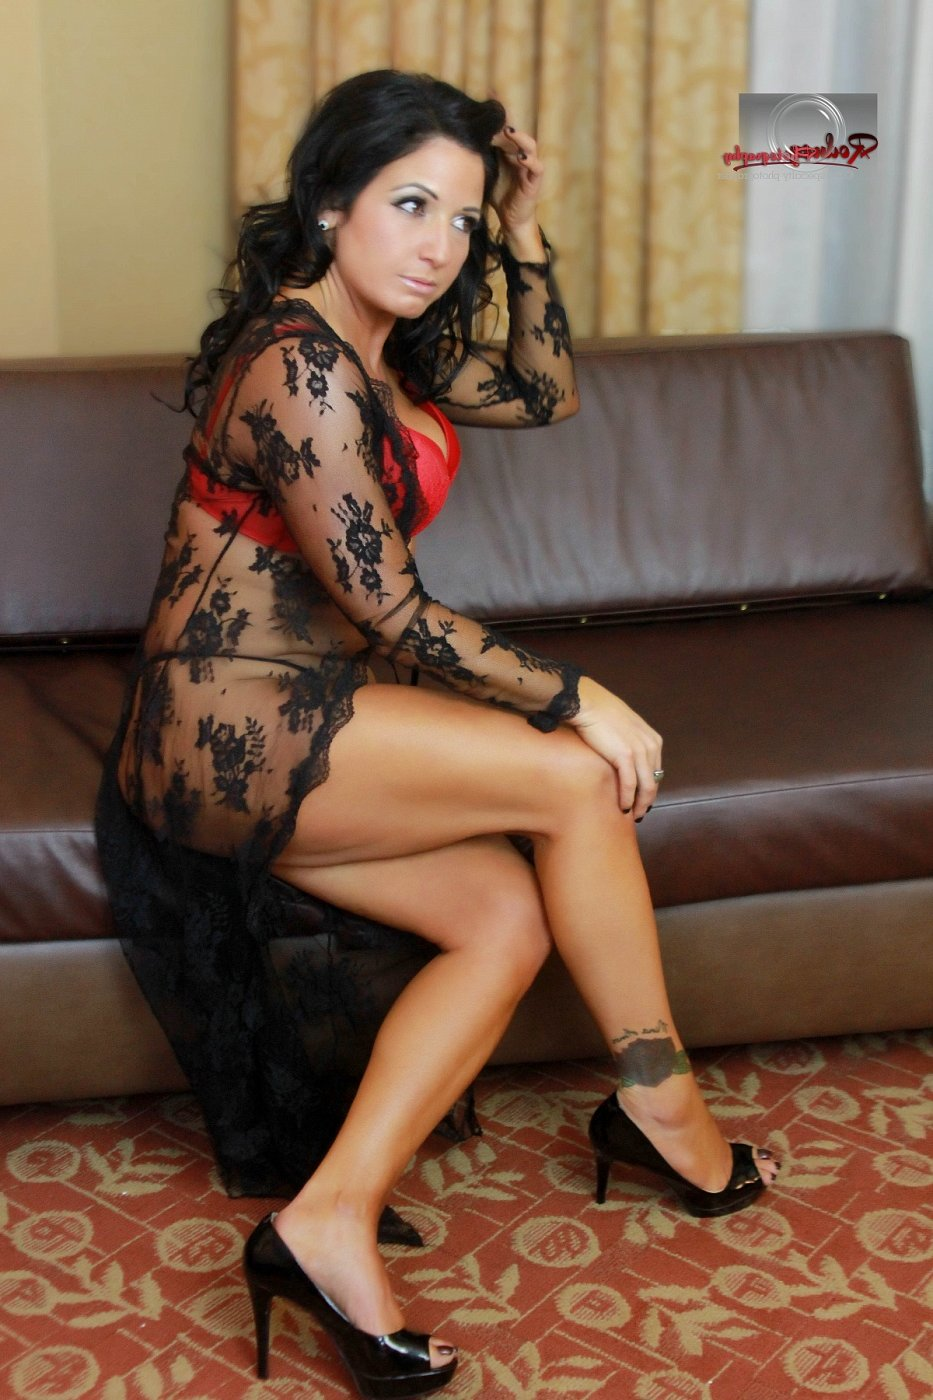 nuru massage in Cudahy